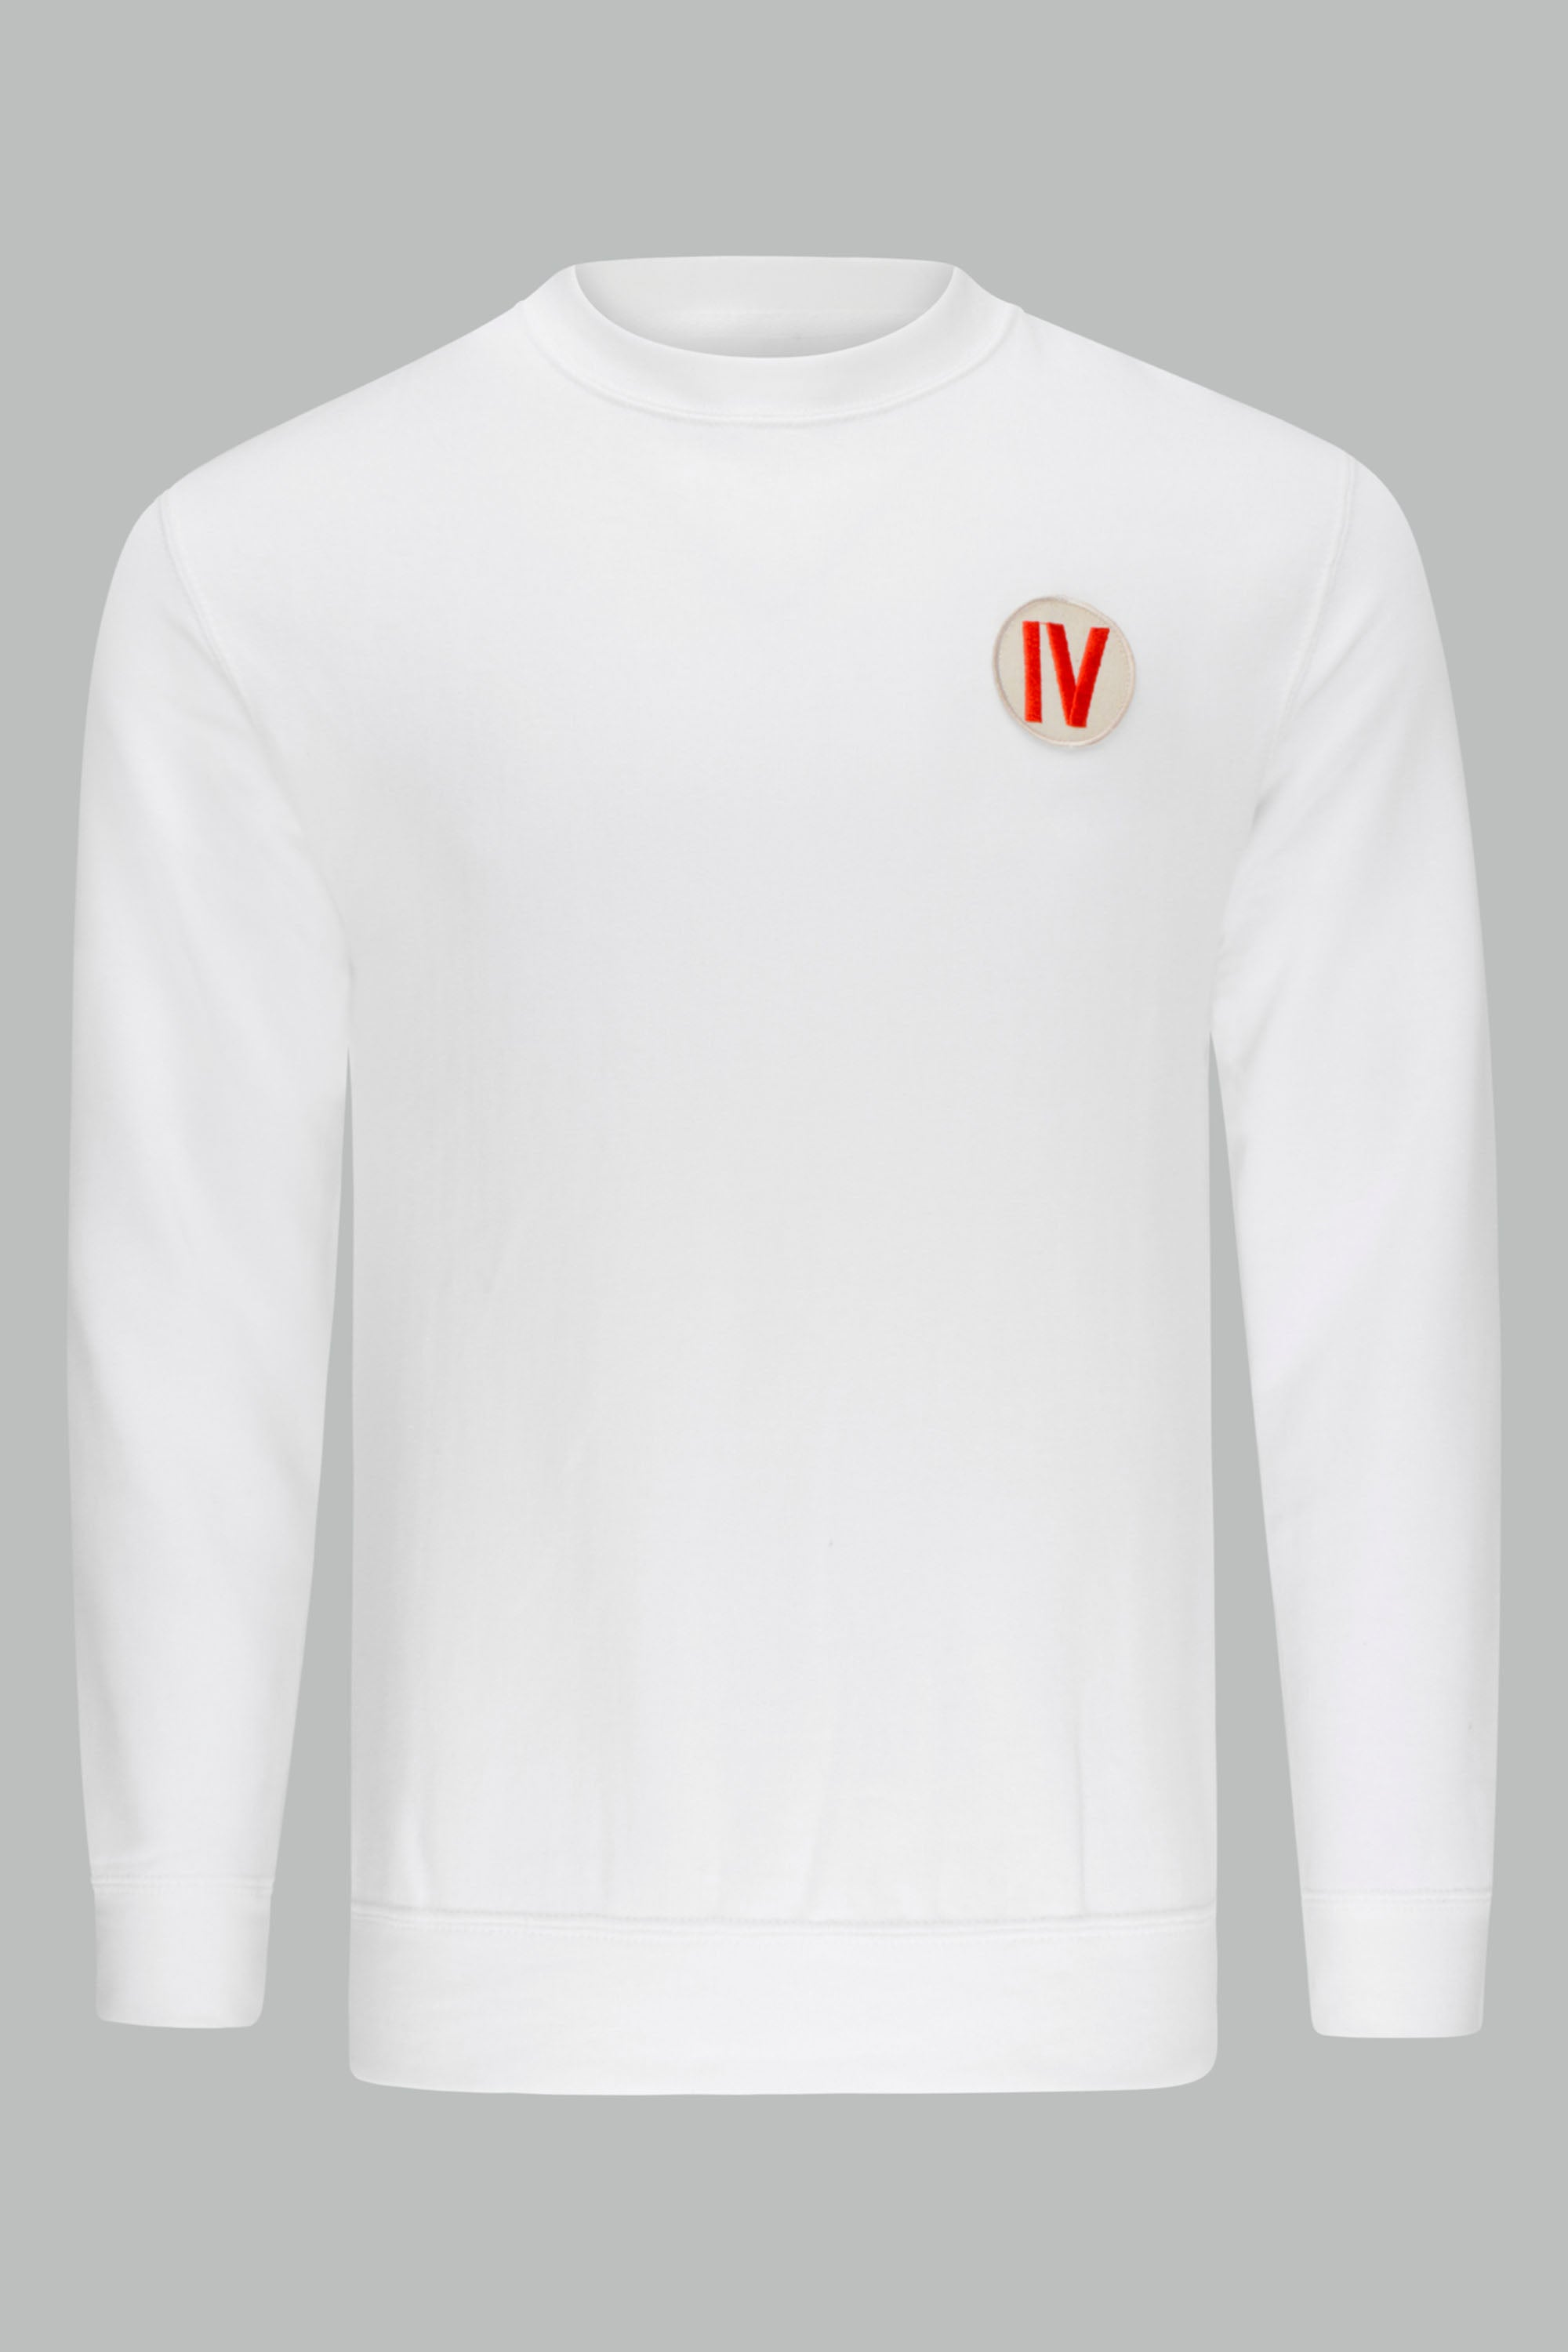 IV SWEATER